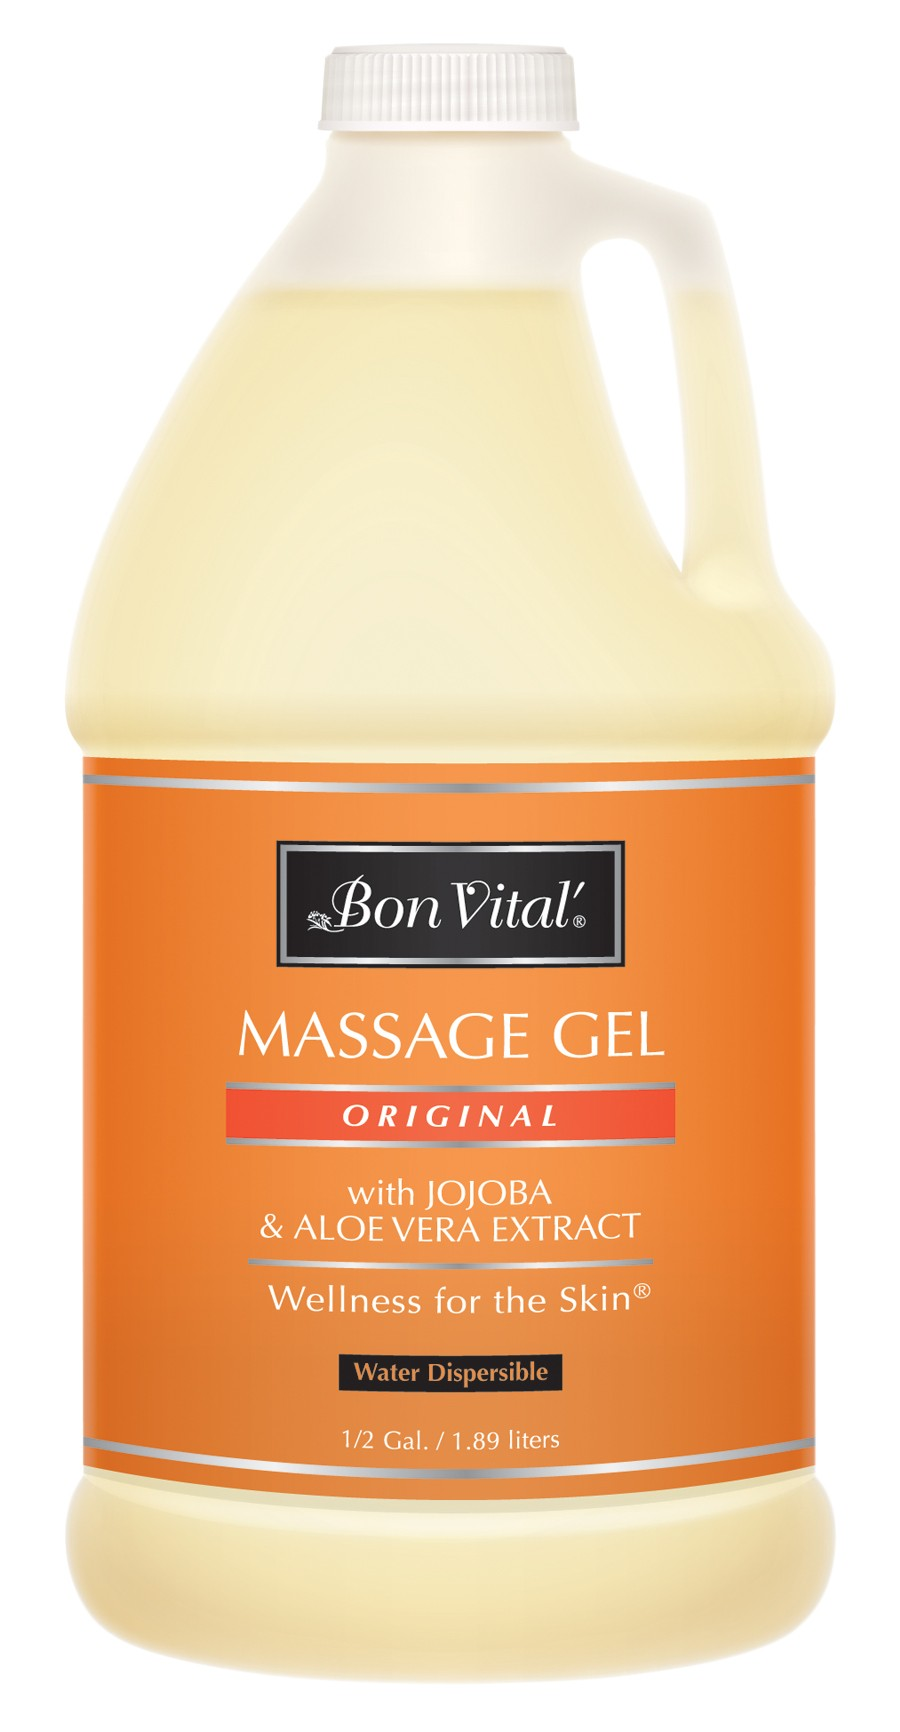 Original Massage Gel - 1/2 gal